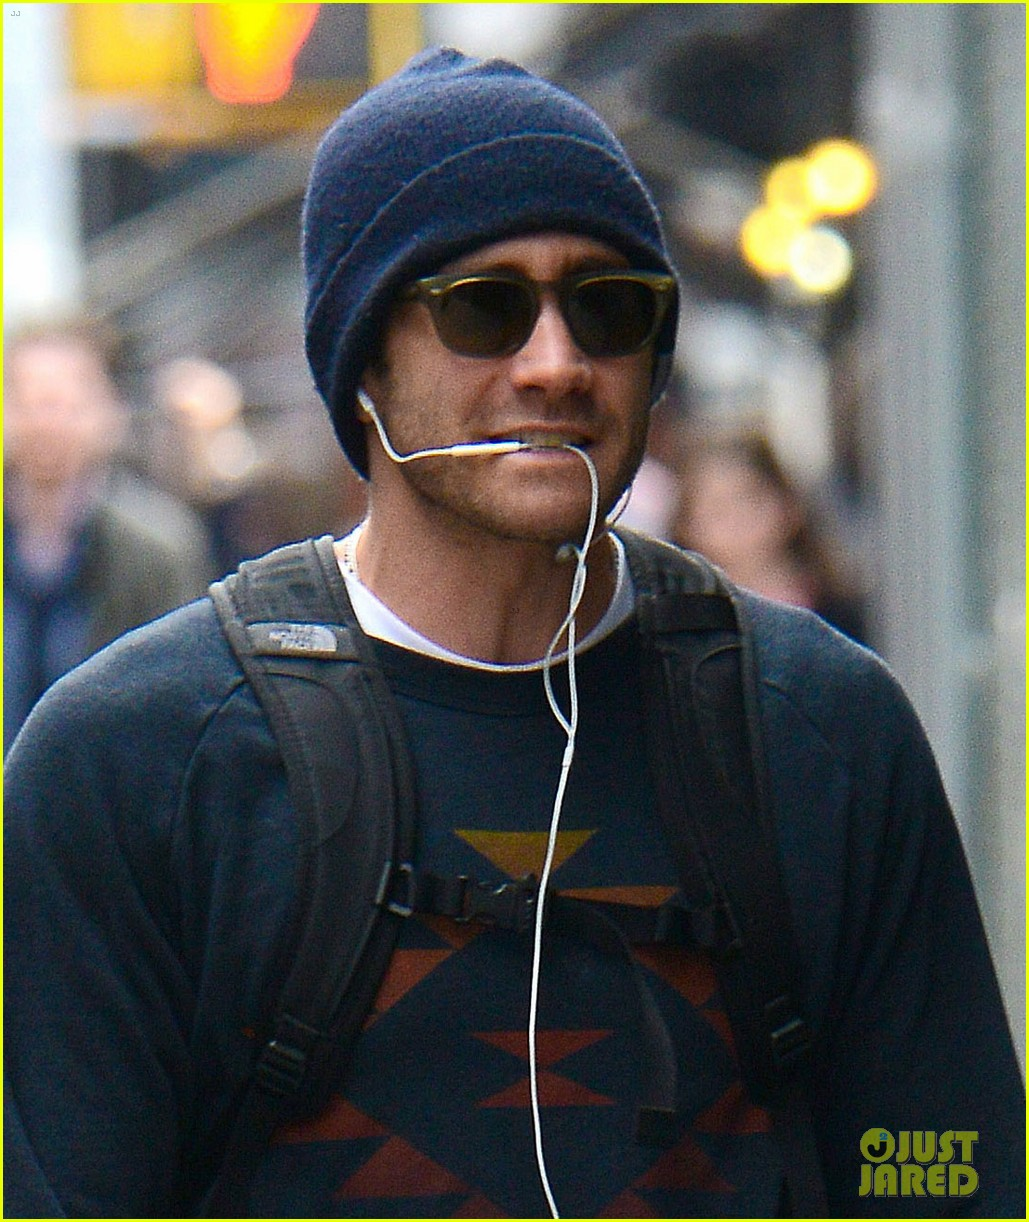 jake gyllenhaal finally shaves his beard off 02